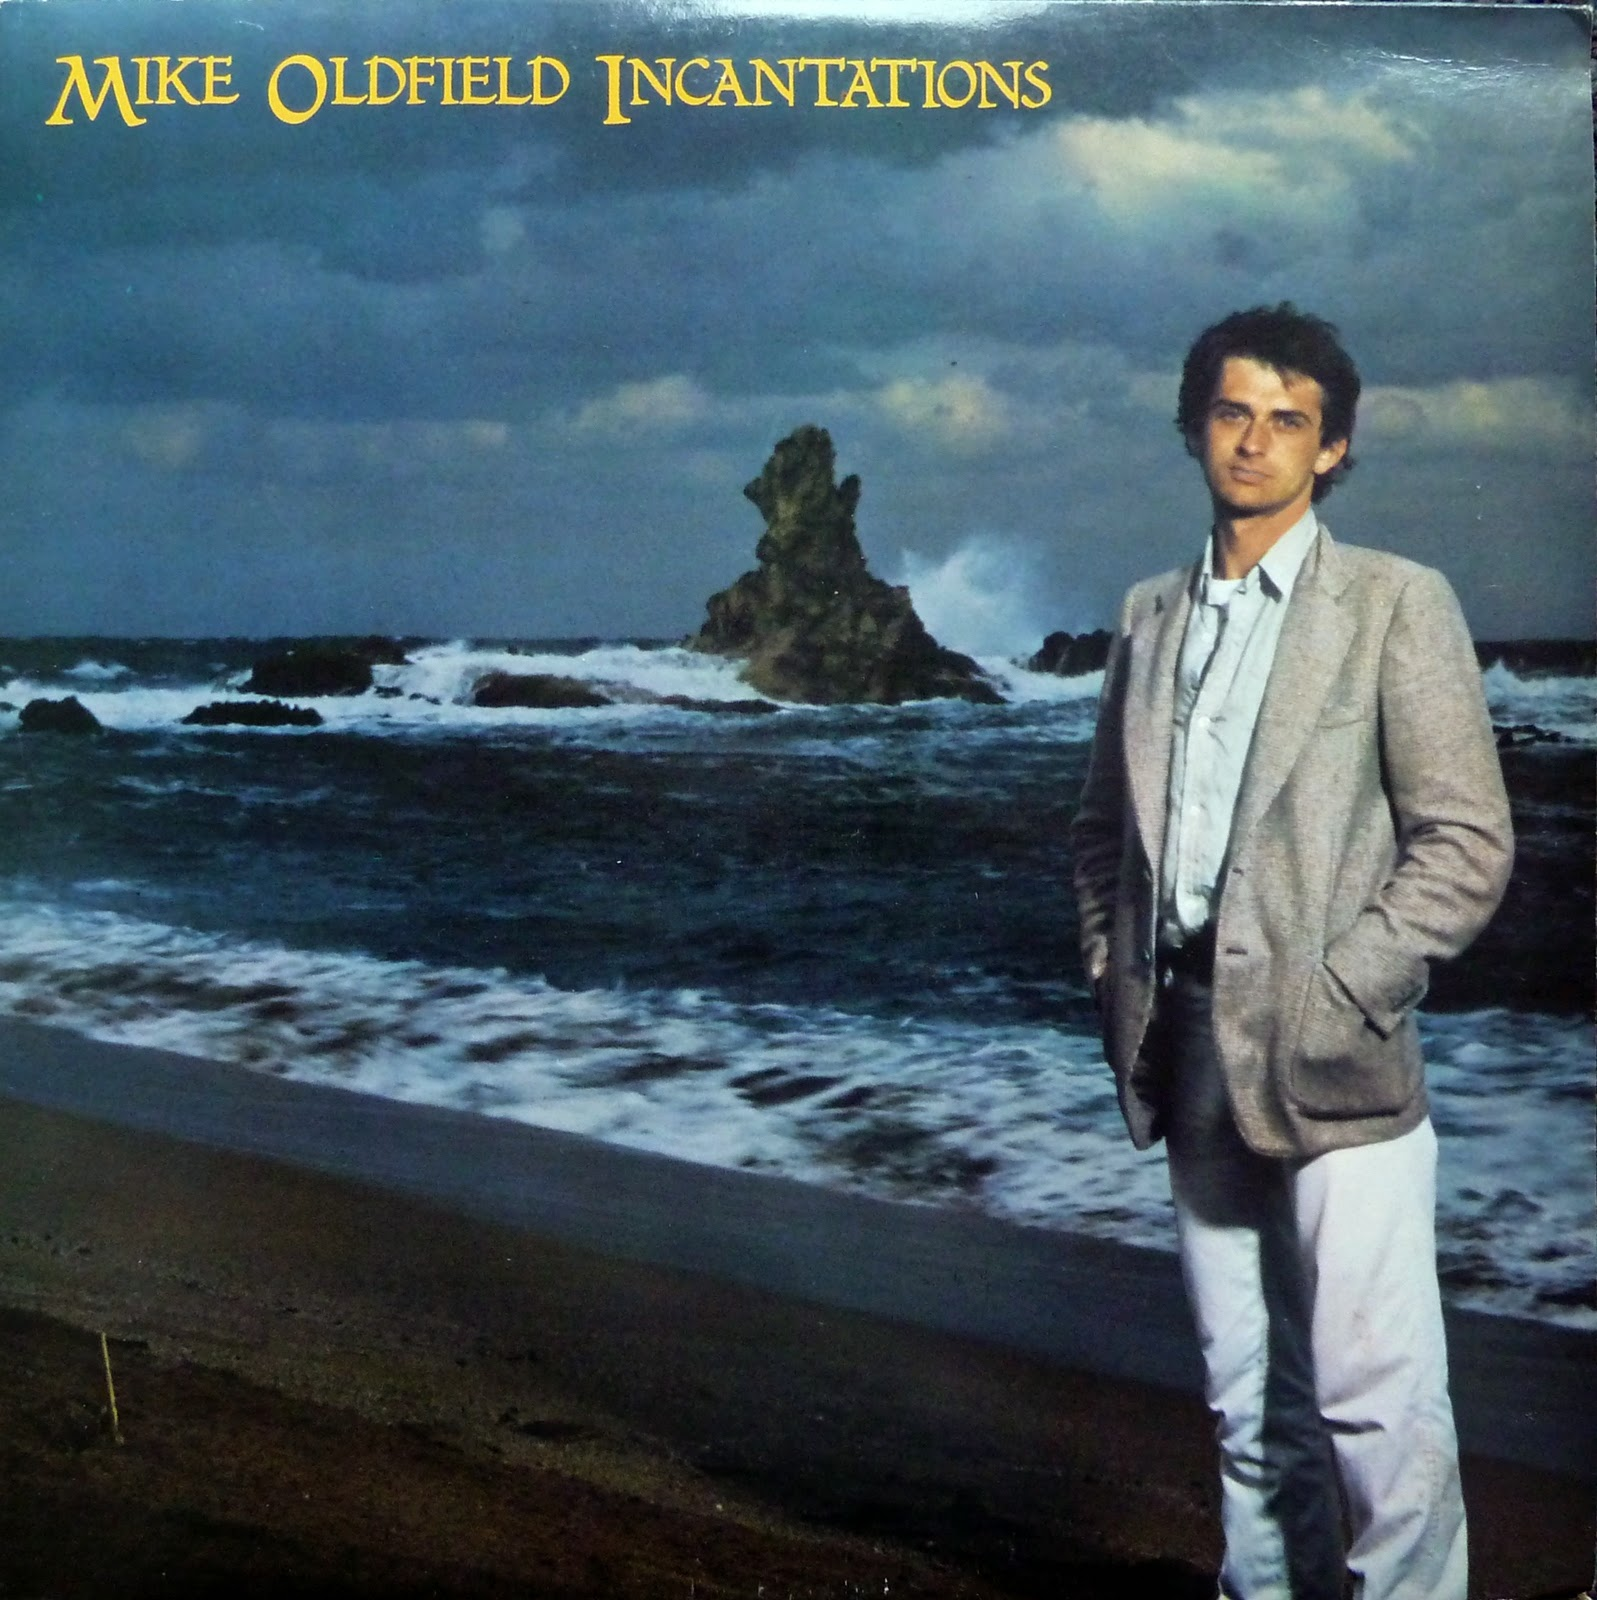 afgm mike oldfield pt 4 boxed and incantations 1978 via vrigin records mercury rcords for the 2011 re issue in 1979 mike included some of his music to a new movie soundtrack